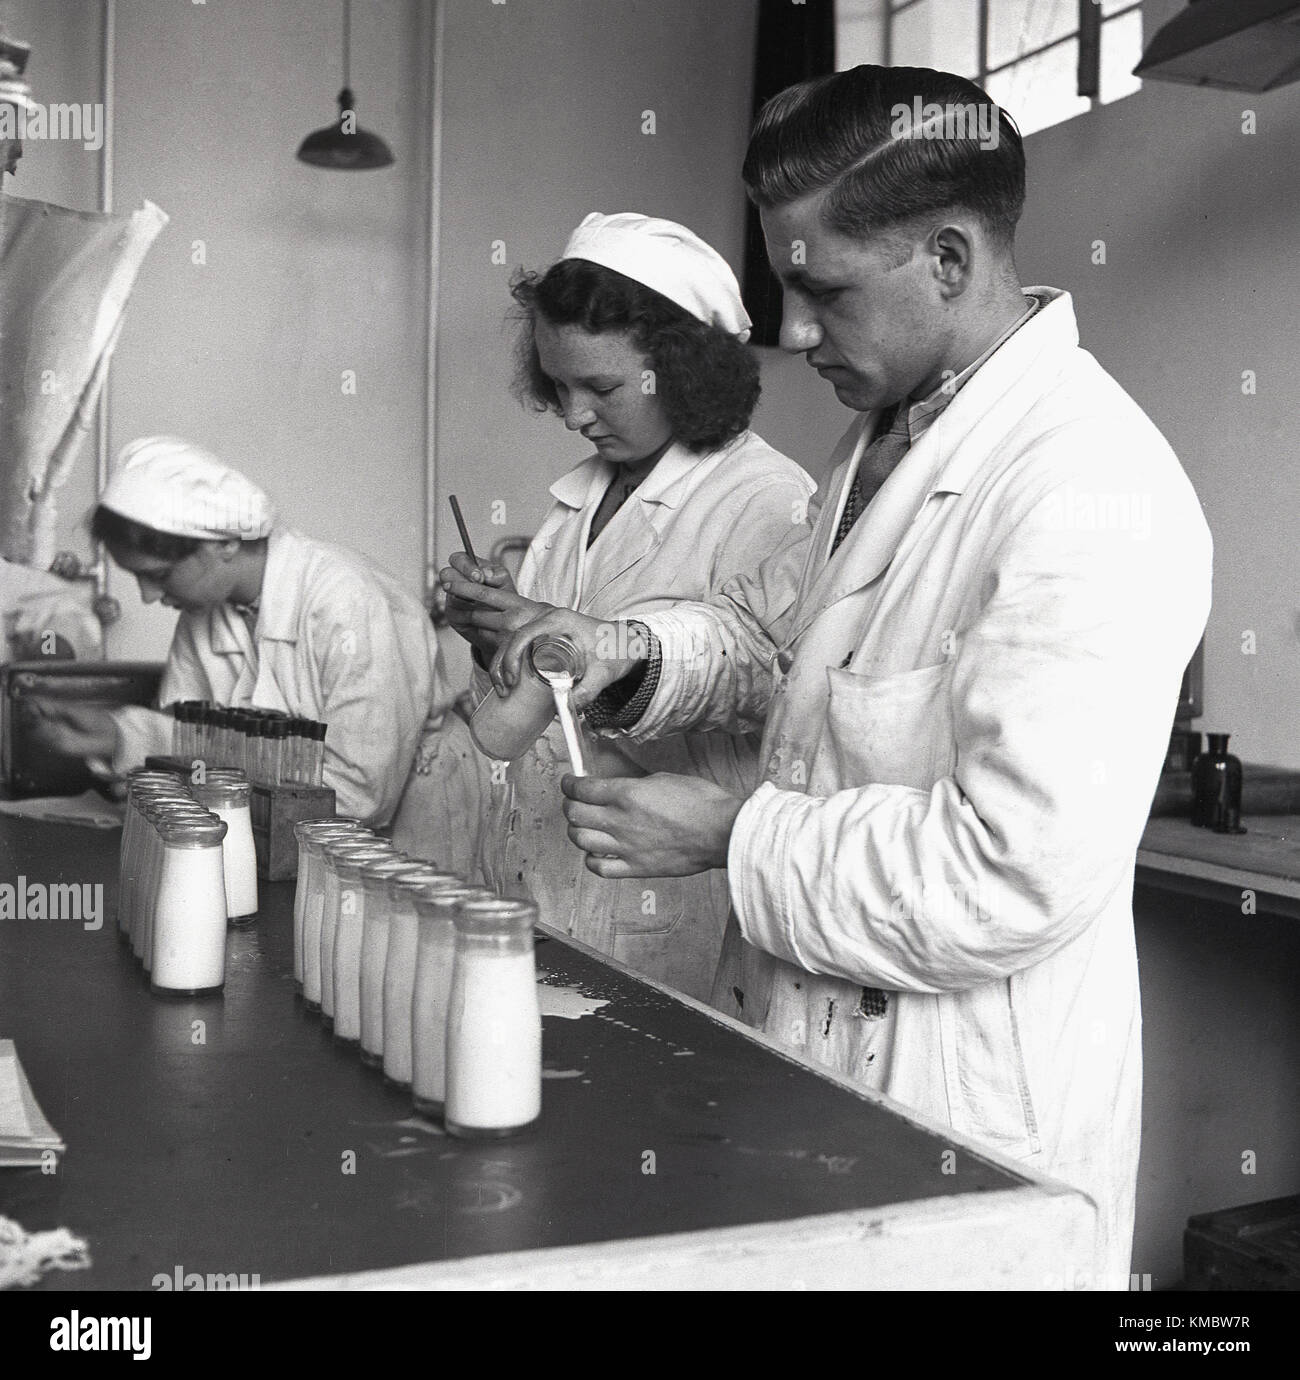 1950s, historical, male and female lab technicians in white coats working at a diary checking samples of milk taken - Stock Image